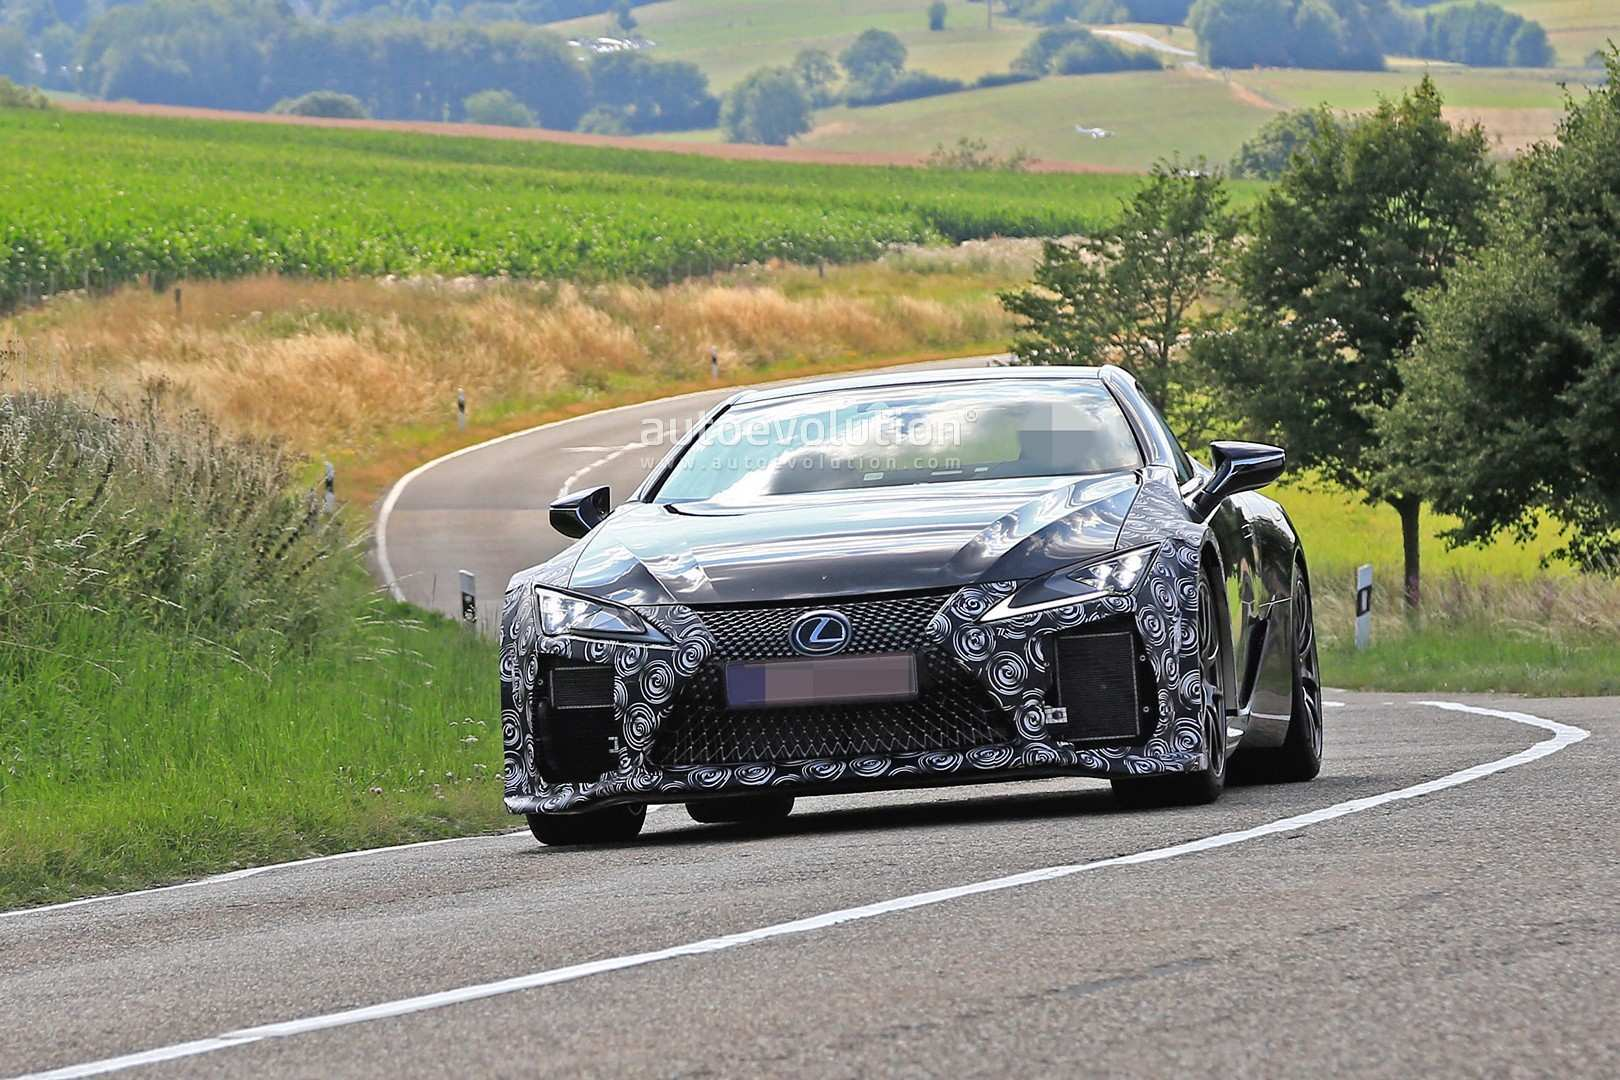 58 Great Lexus Supercar 2020 Model by Lexus Supercar 2020